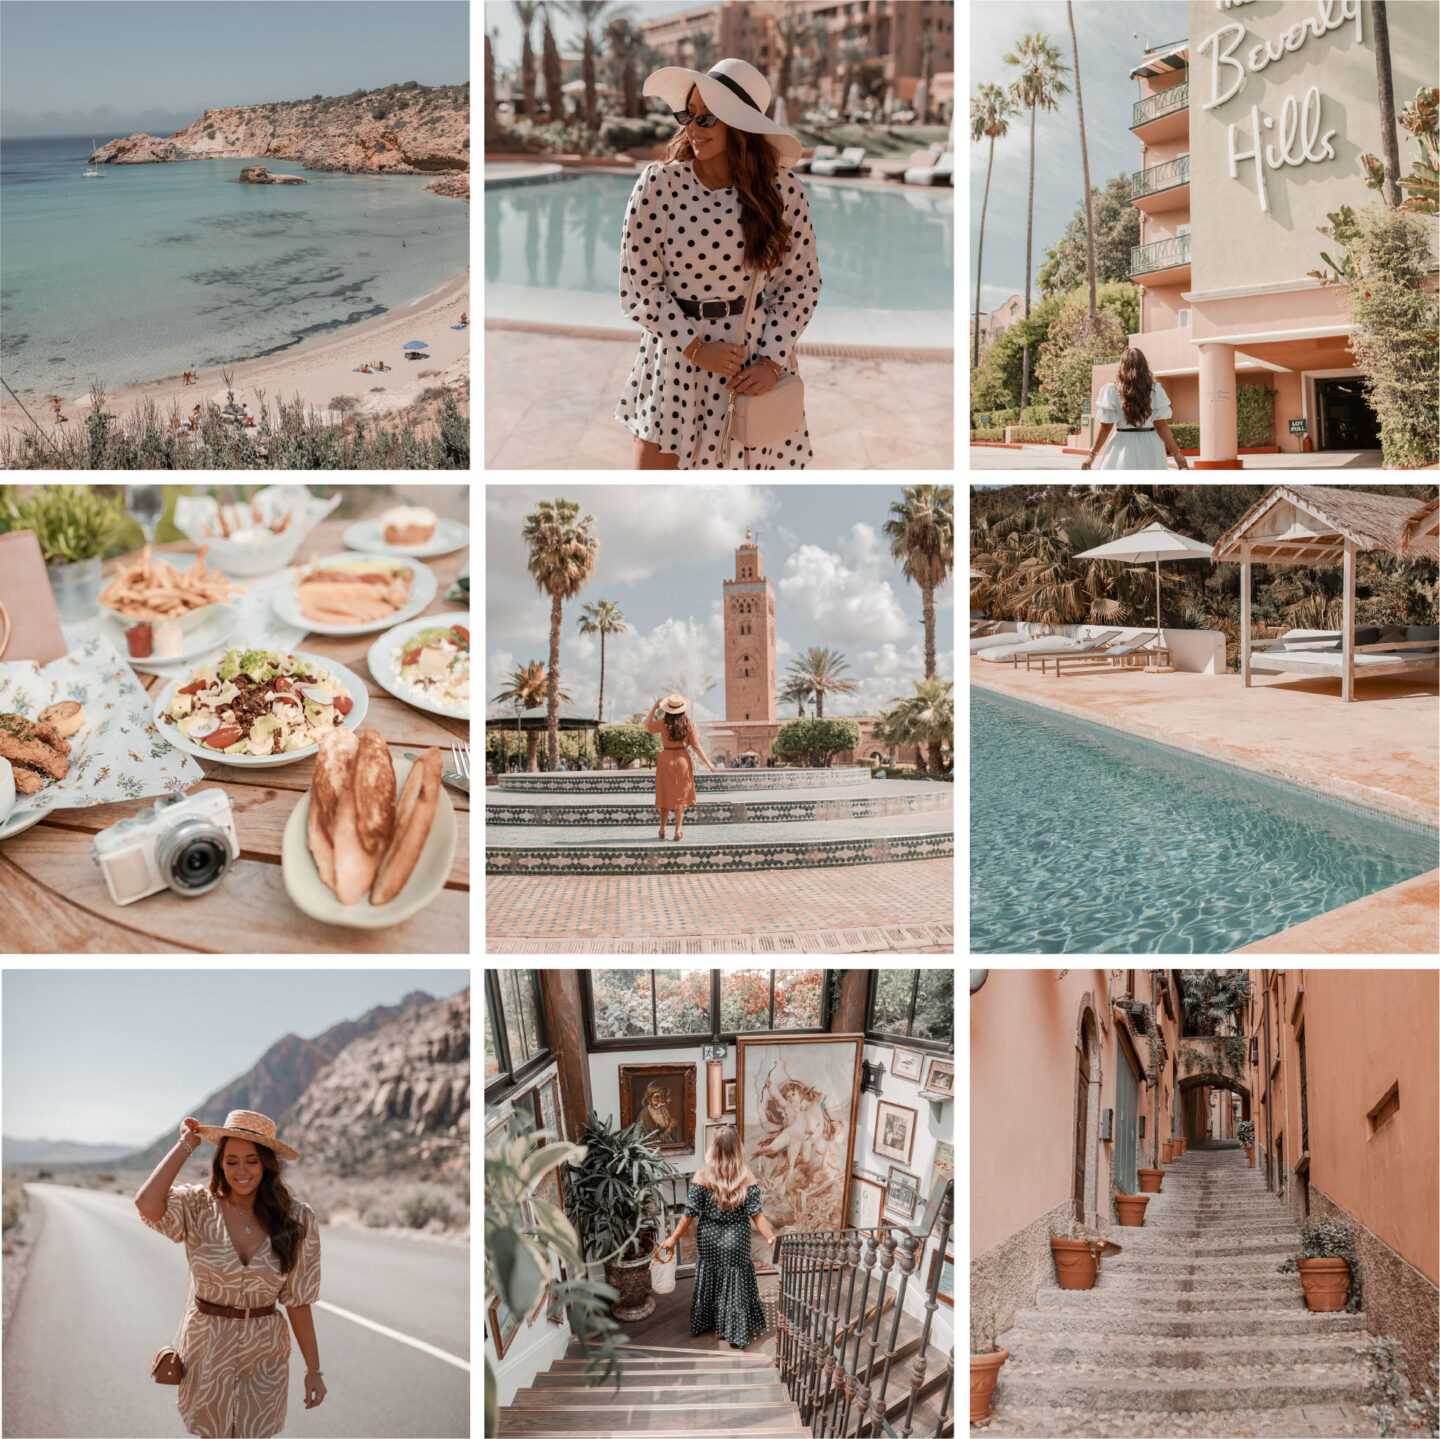 kelseyinlondon-perfect-instagram-feed-theme-lightroom-preset-blogger-influencer